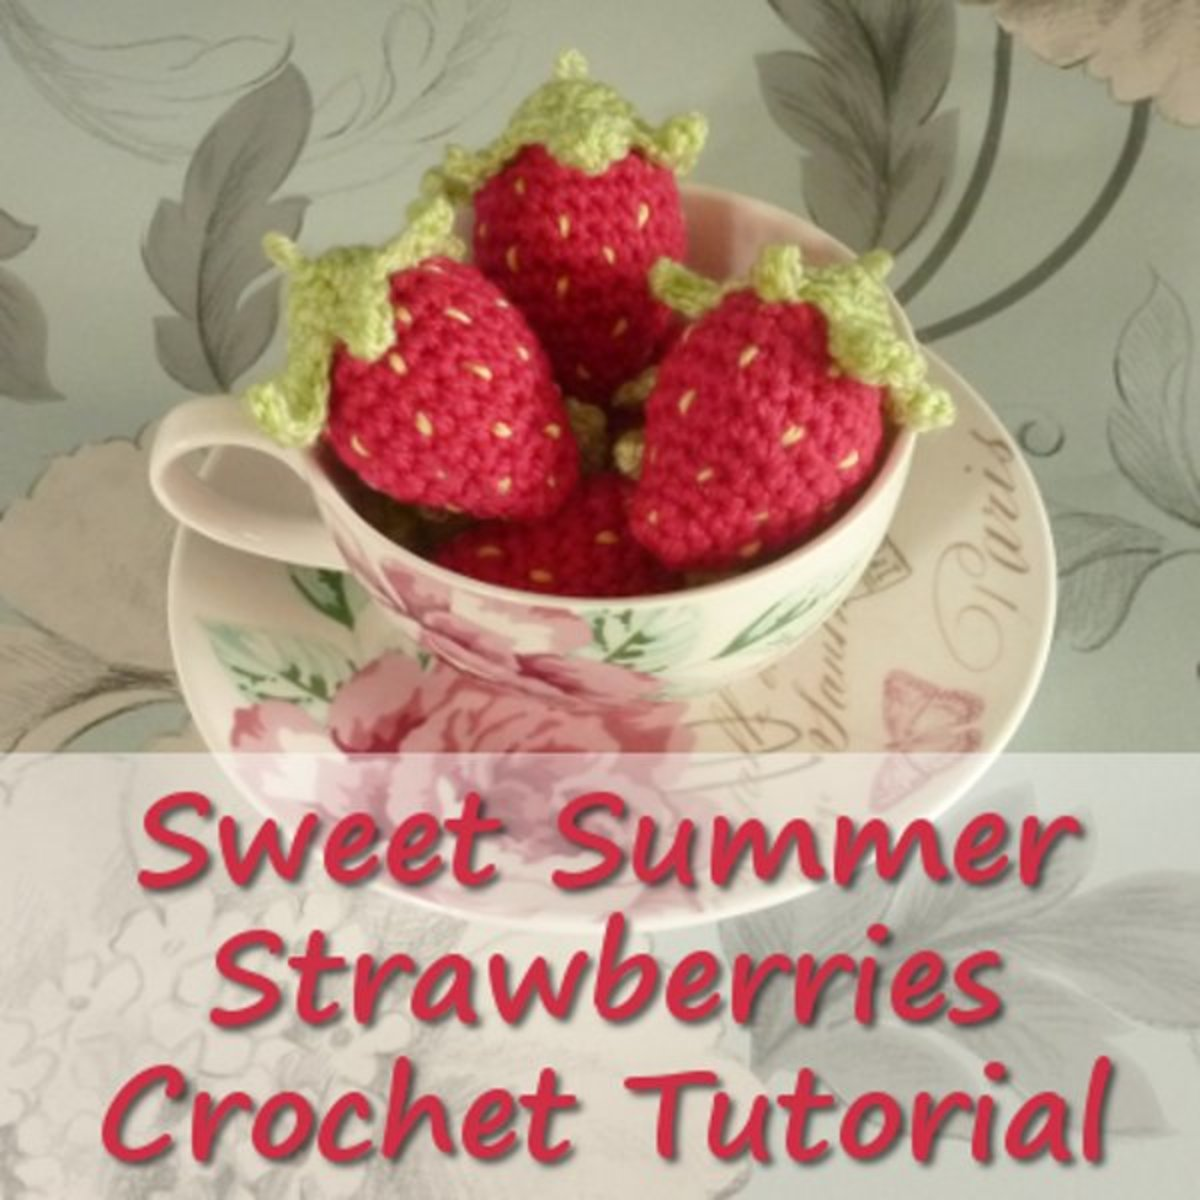 Free crochet strawberry pattern with a detailed how to photo tutorial.